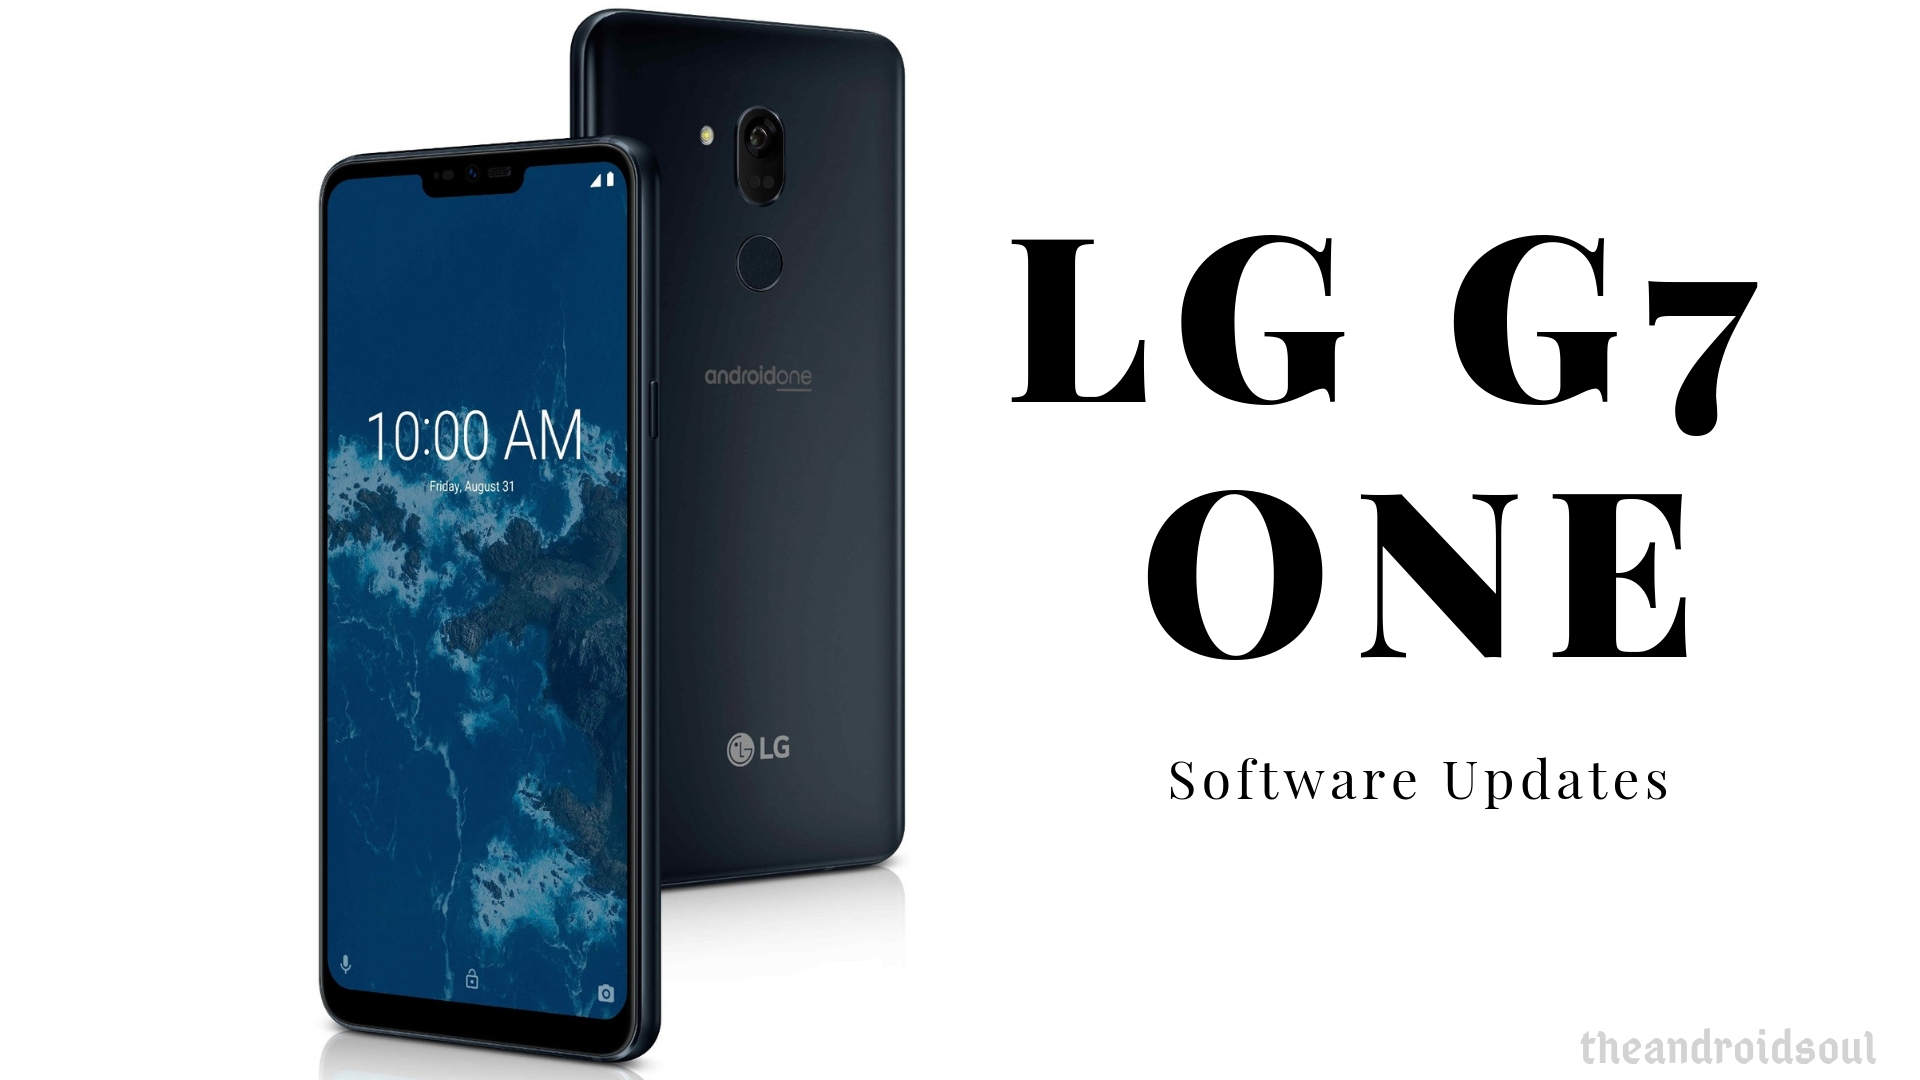 LG G7 One software updates